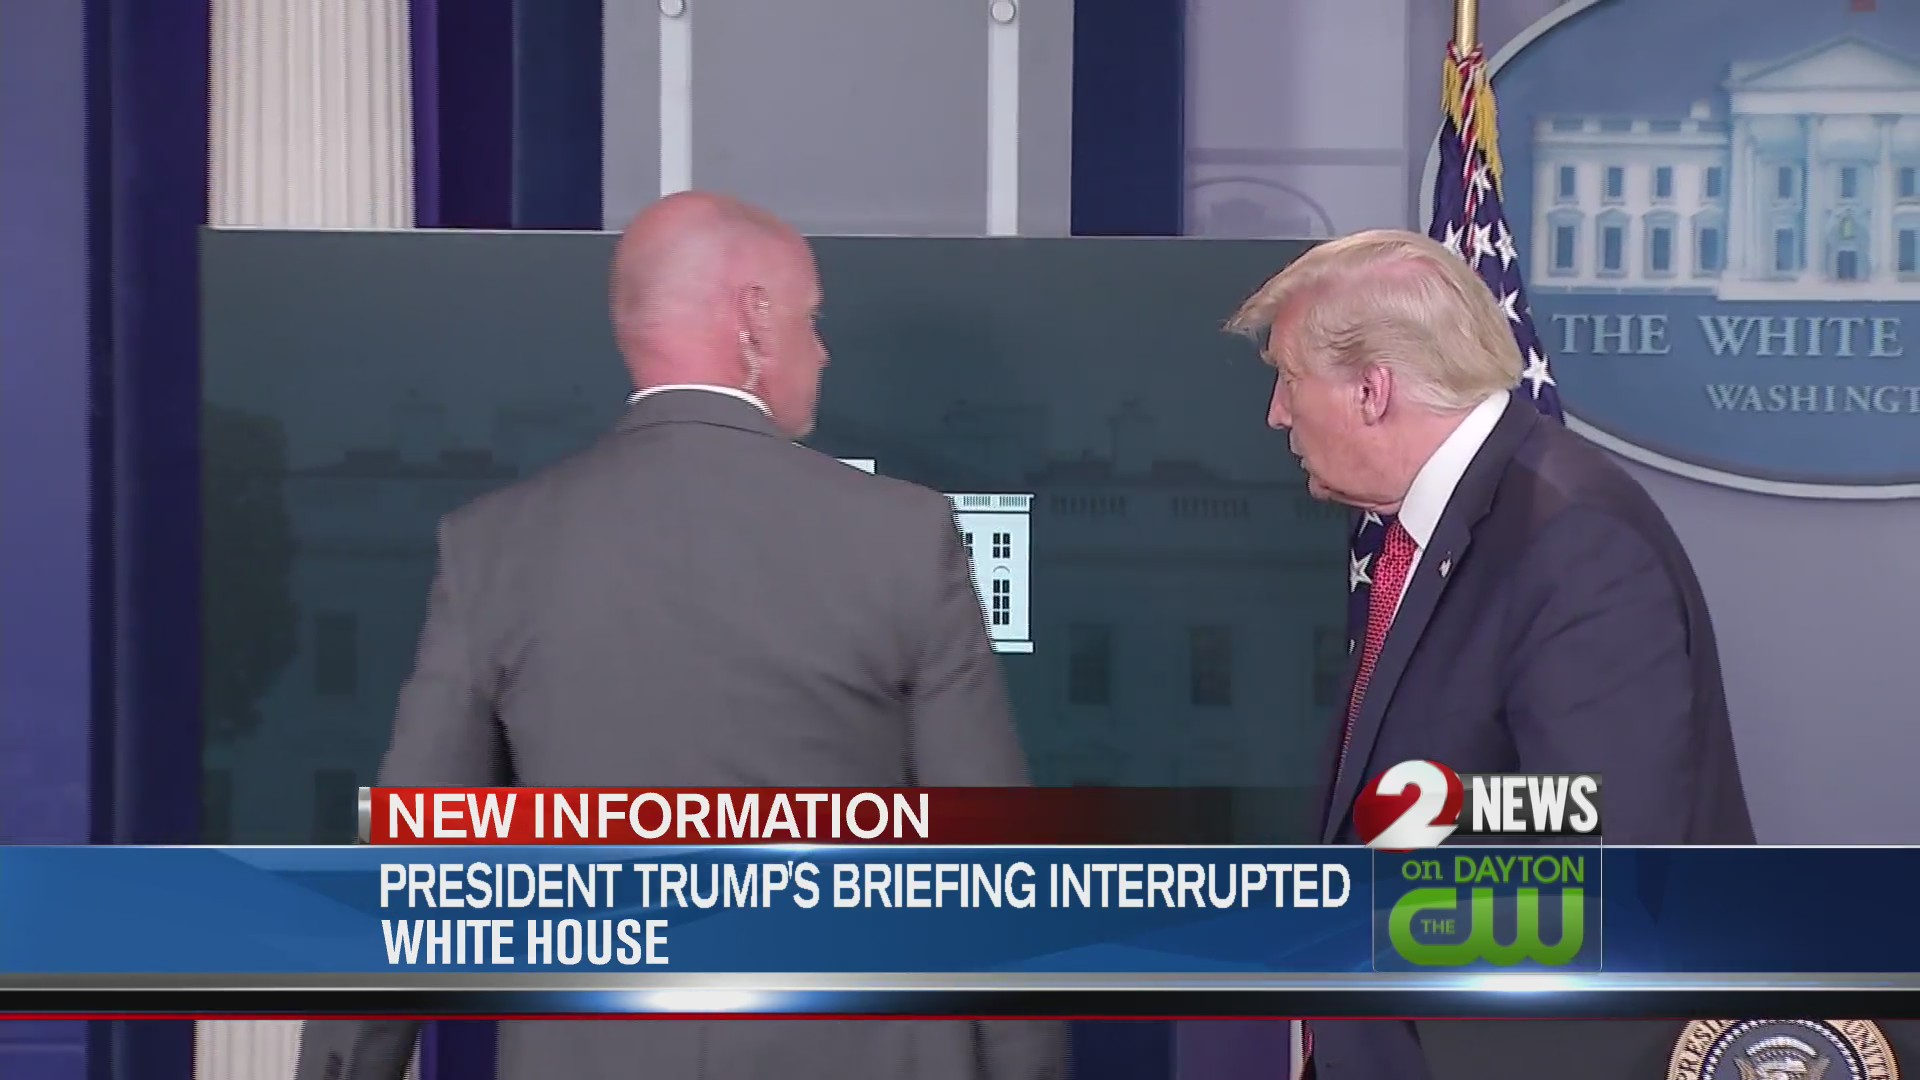 President's briefing interrupted